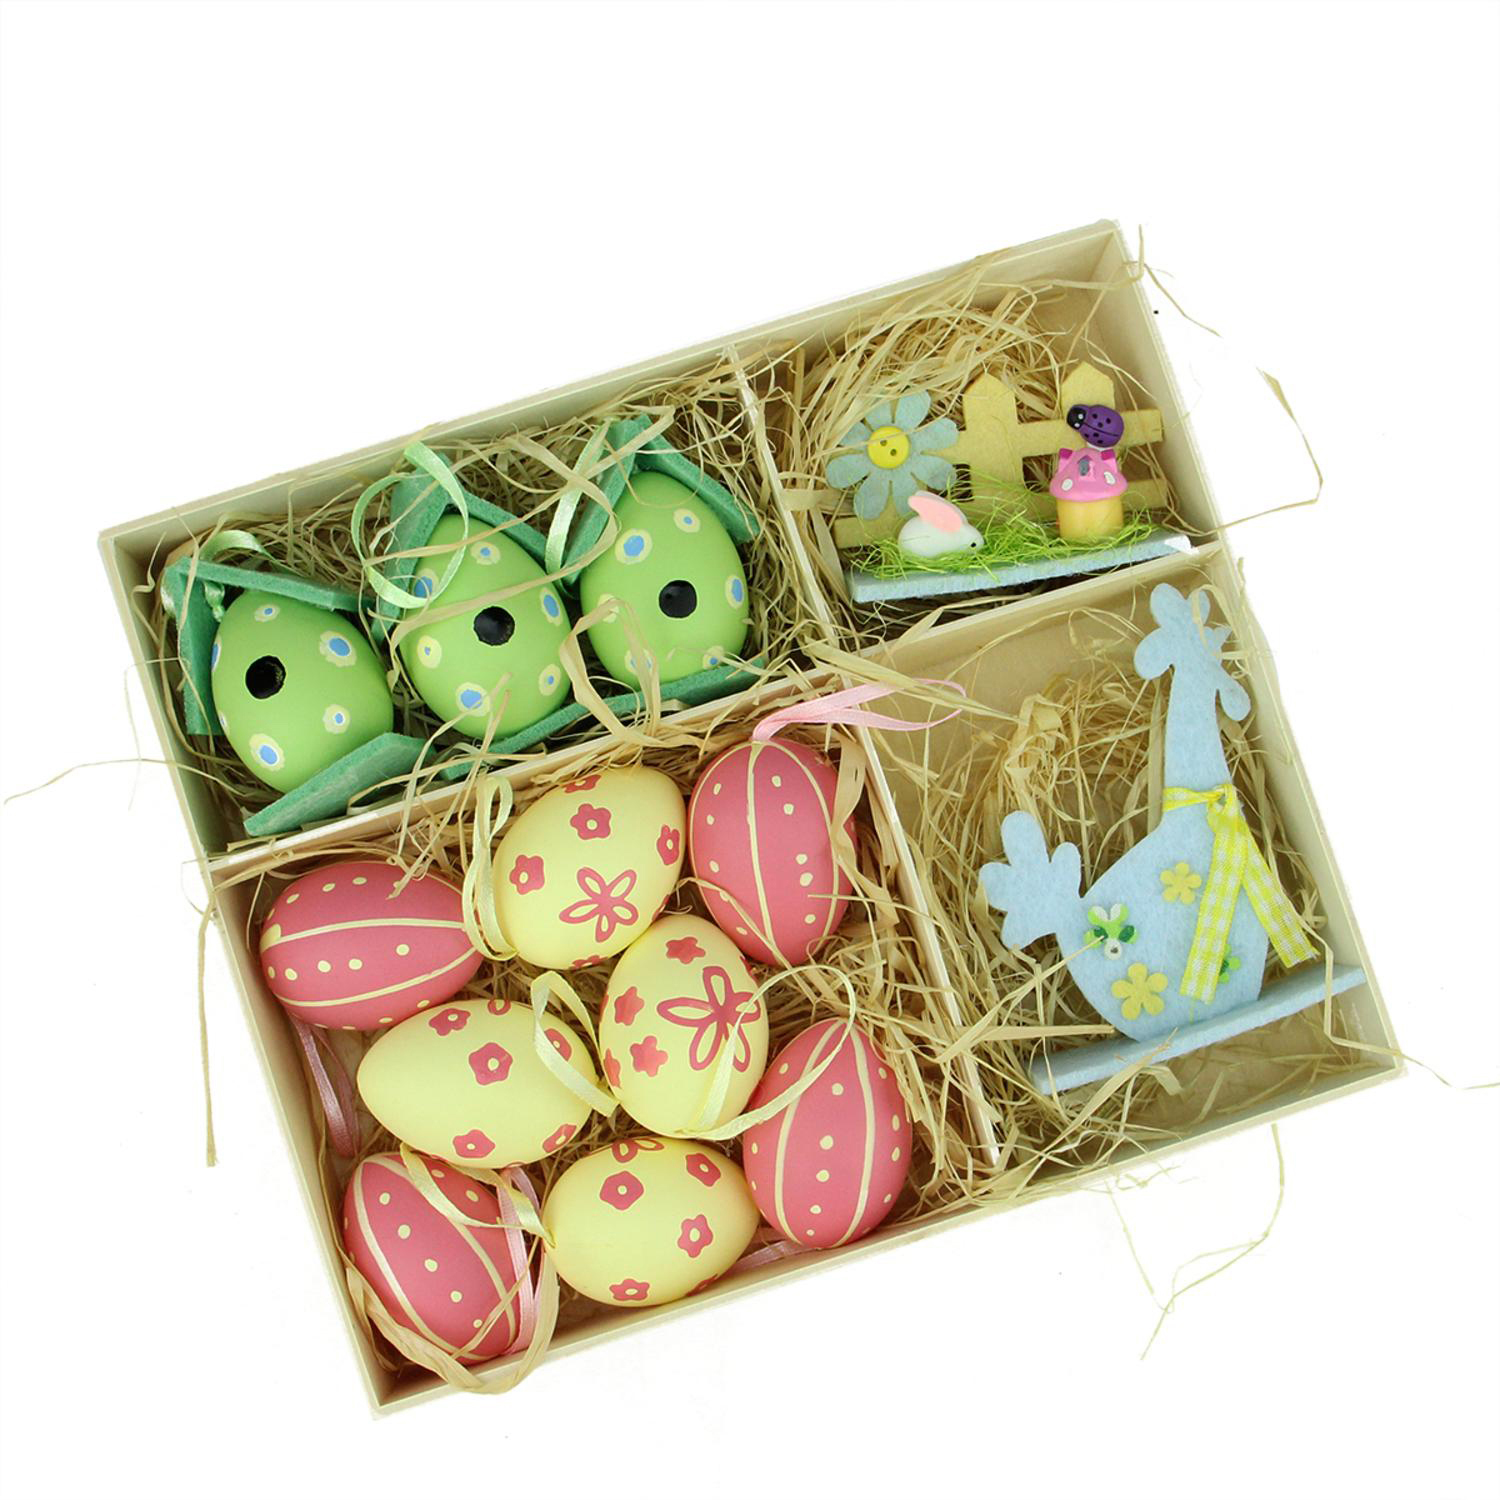 Pink, Blue, Green & Yellow Easter Egg Birdhouse & Rooster Decorations